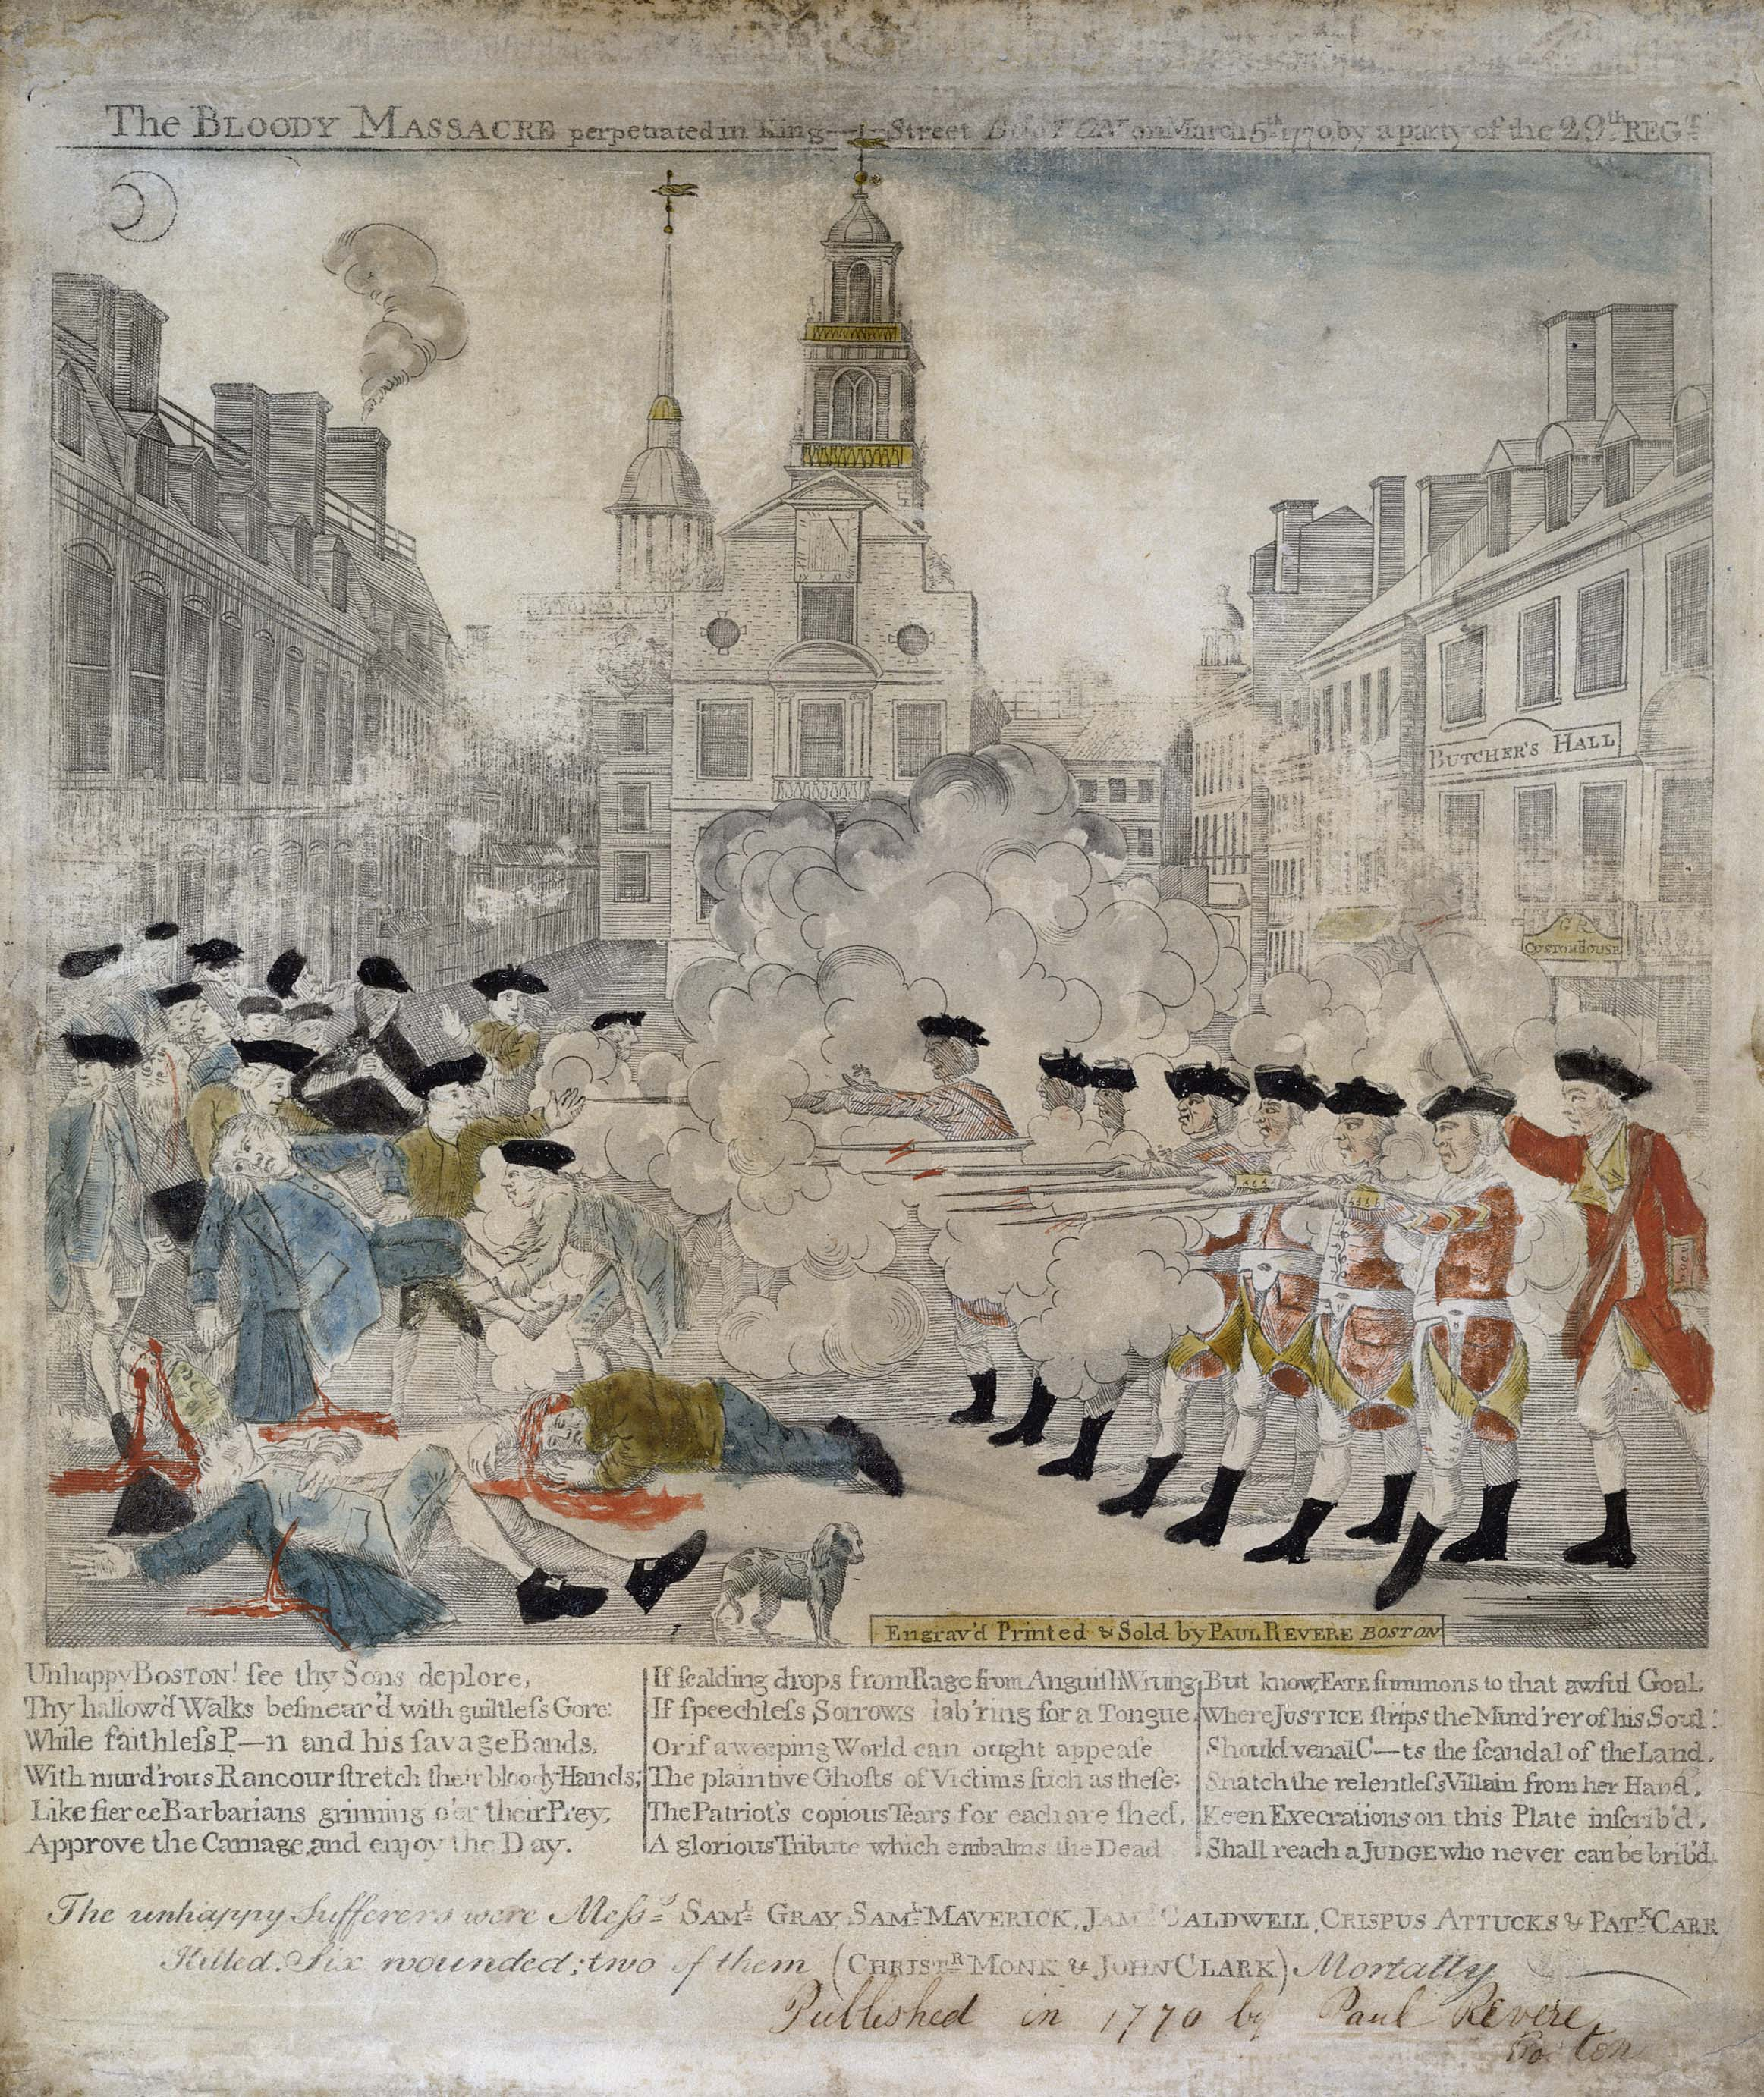 the american revolution  the american yawp this iconic image of the boston massacre by paul revere sparked fury in  both americans and